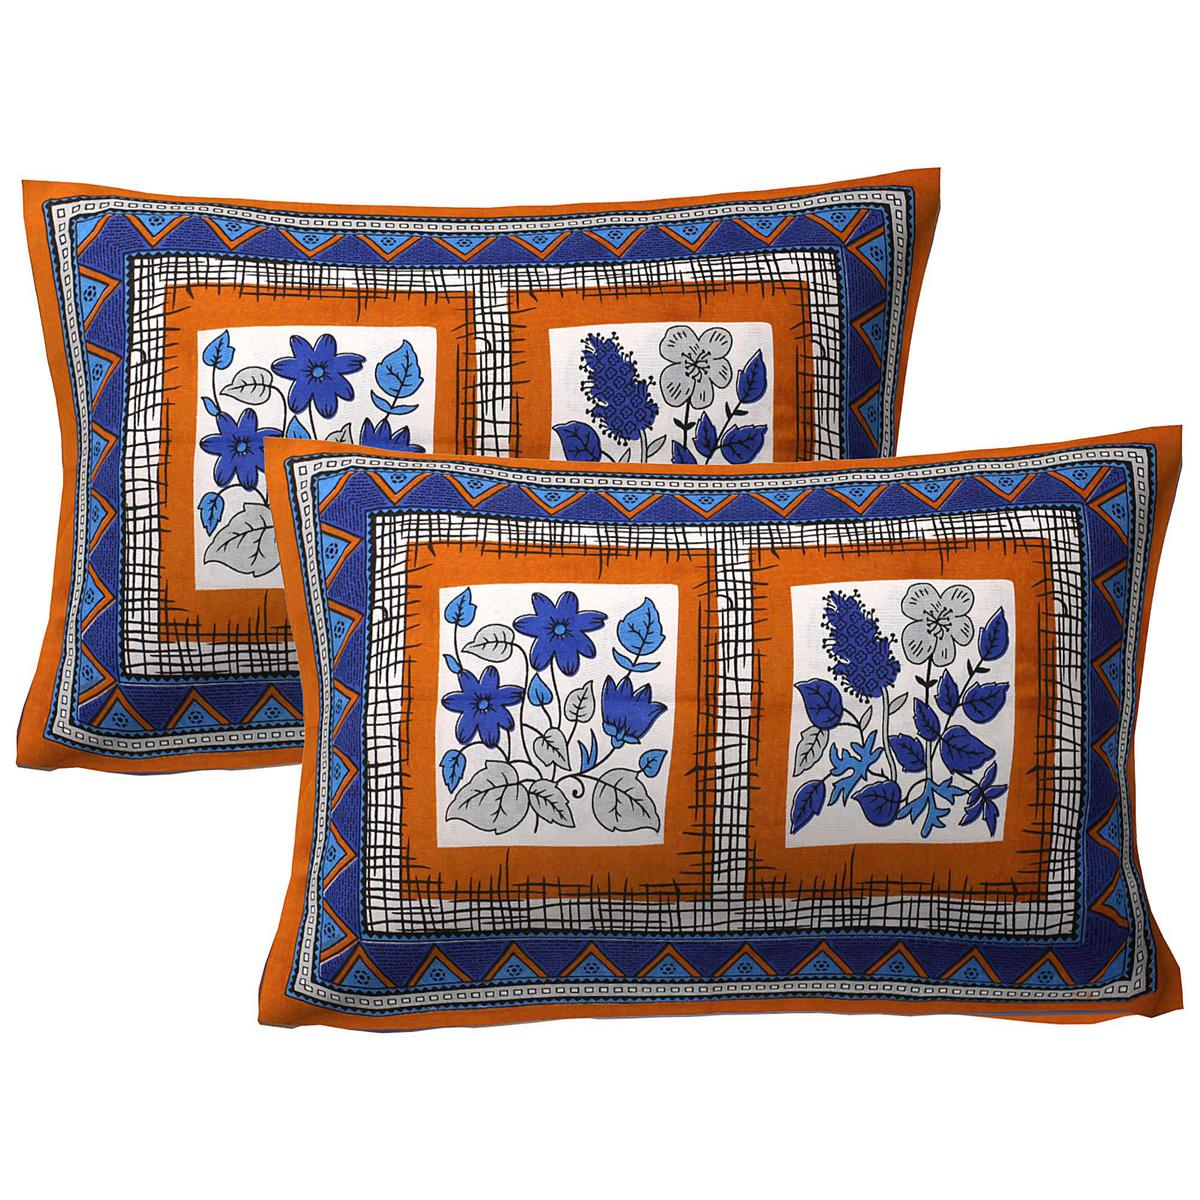 AJ Home - Brown Colored 100% Cotton Printed Pillow Cover Set (2 Pieces)